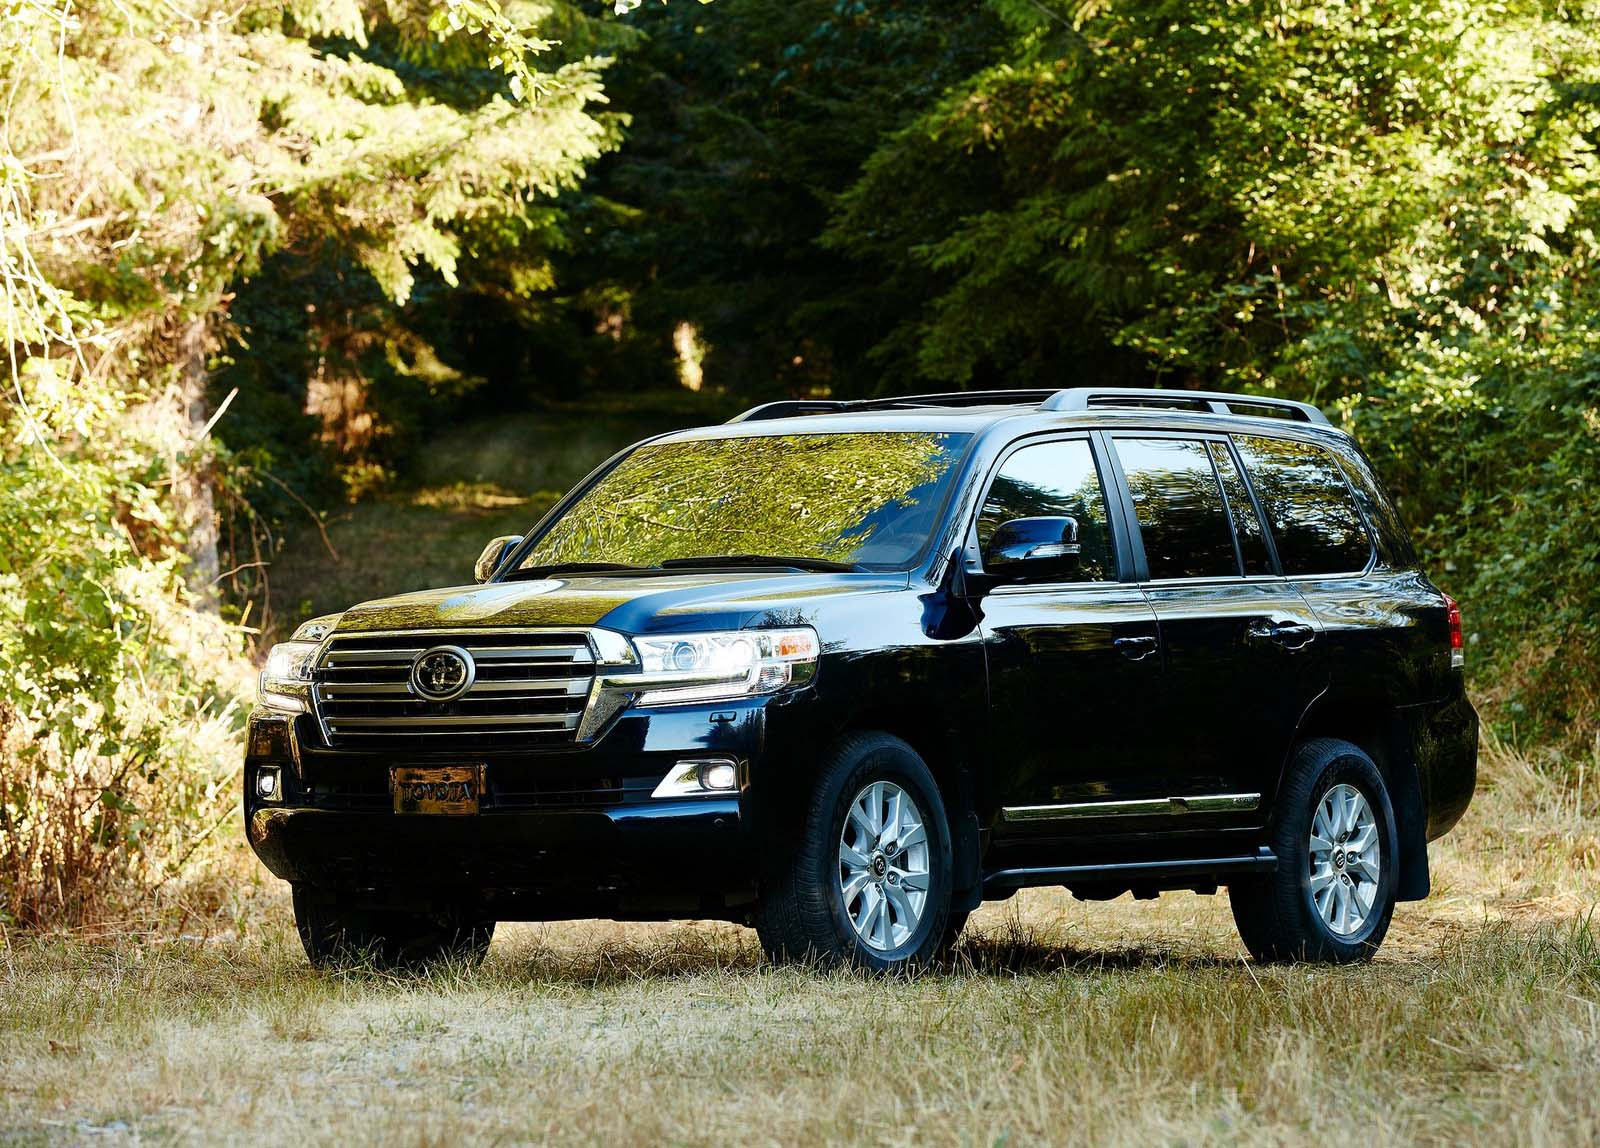 Toyota-Land_Cruiser-2016-1600-0c